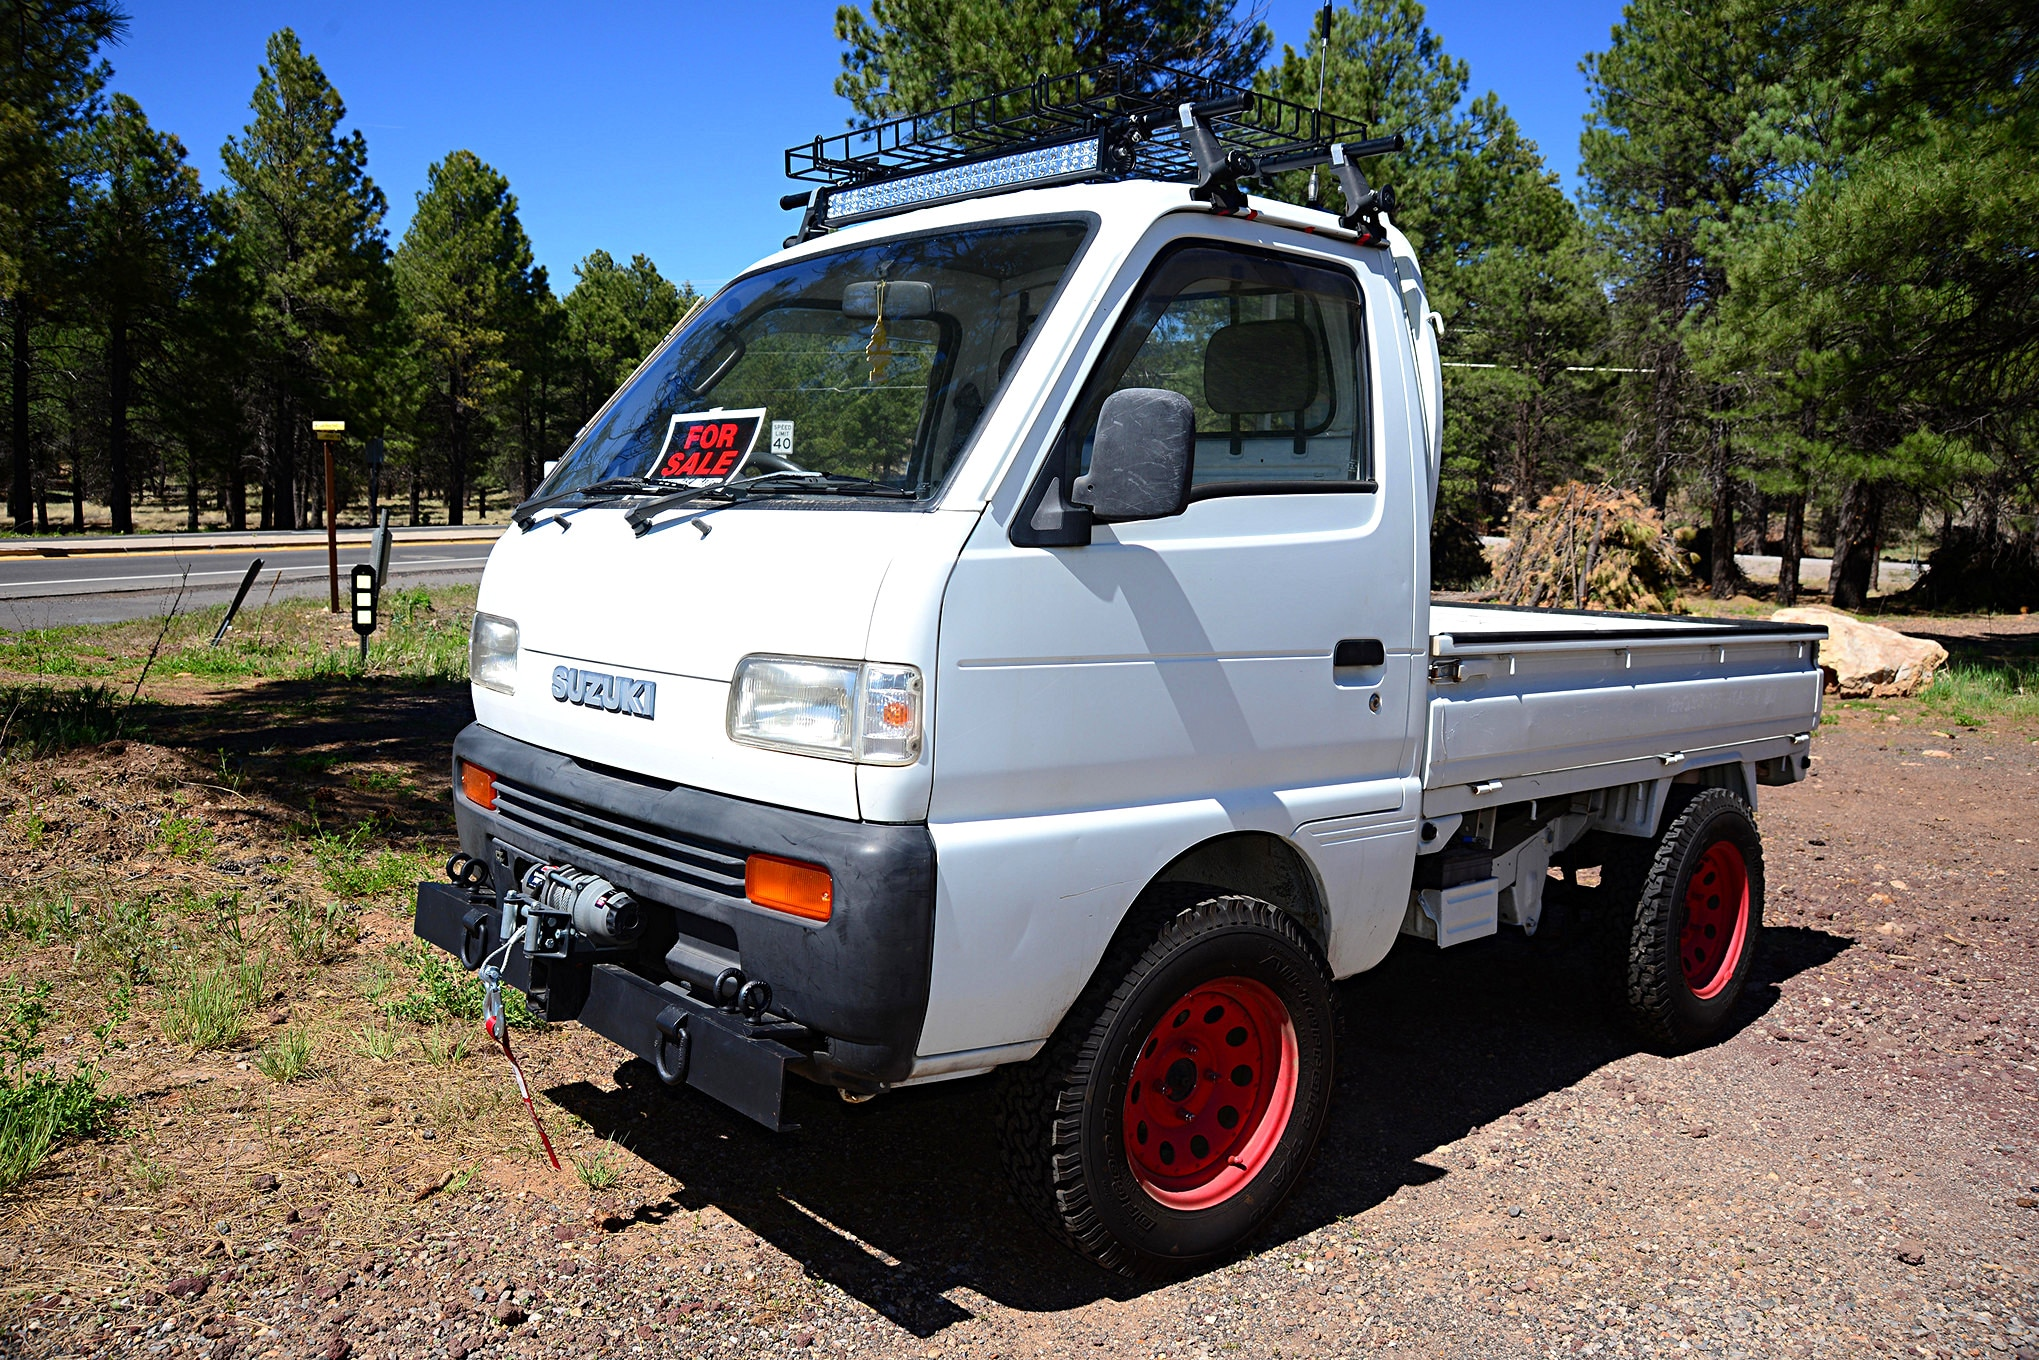 020 2016 Overland Expo 4x4 Vehicles Camping Flagstaff Mormon Lake Arizona Suzuki Carry Micro Truck Kei Off Road Photo 107157355